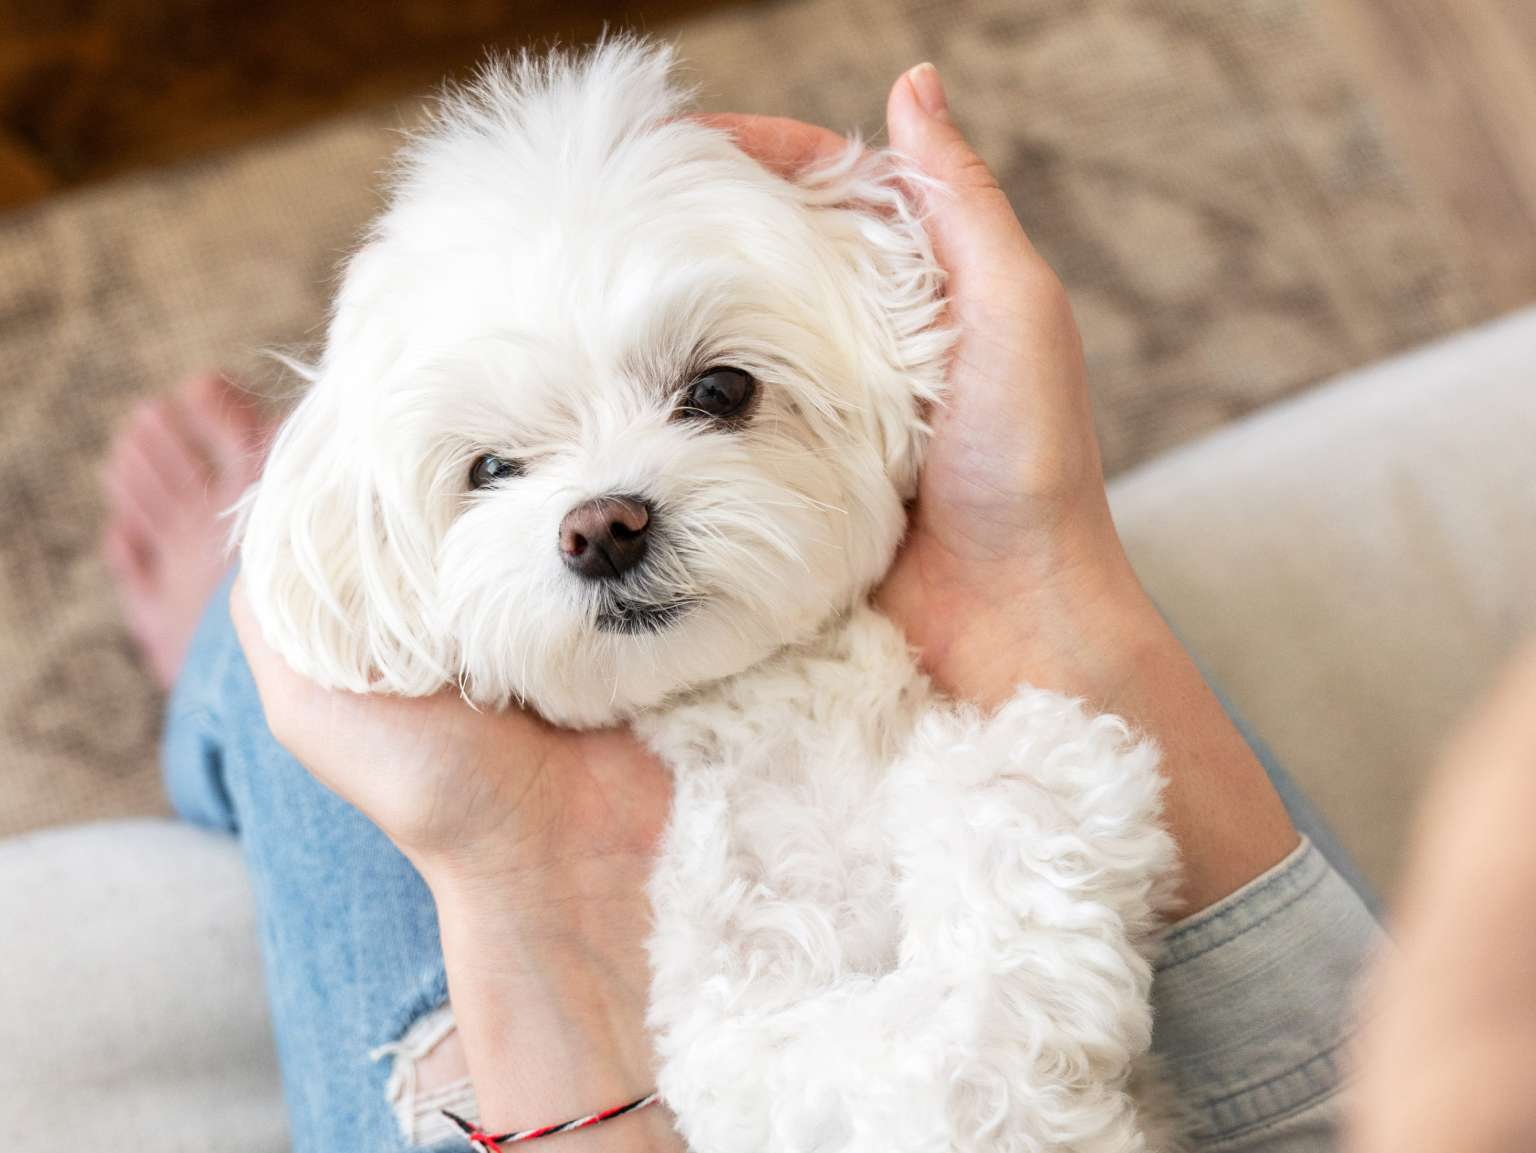 A close-up of a woman's hands holding a little white dog's head on her lap